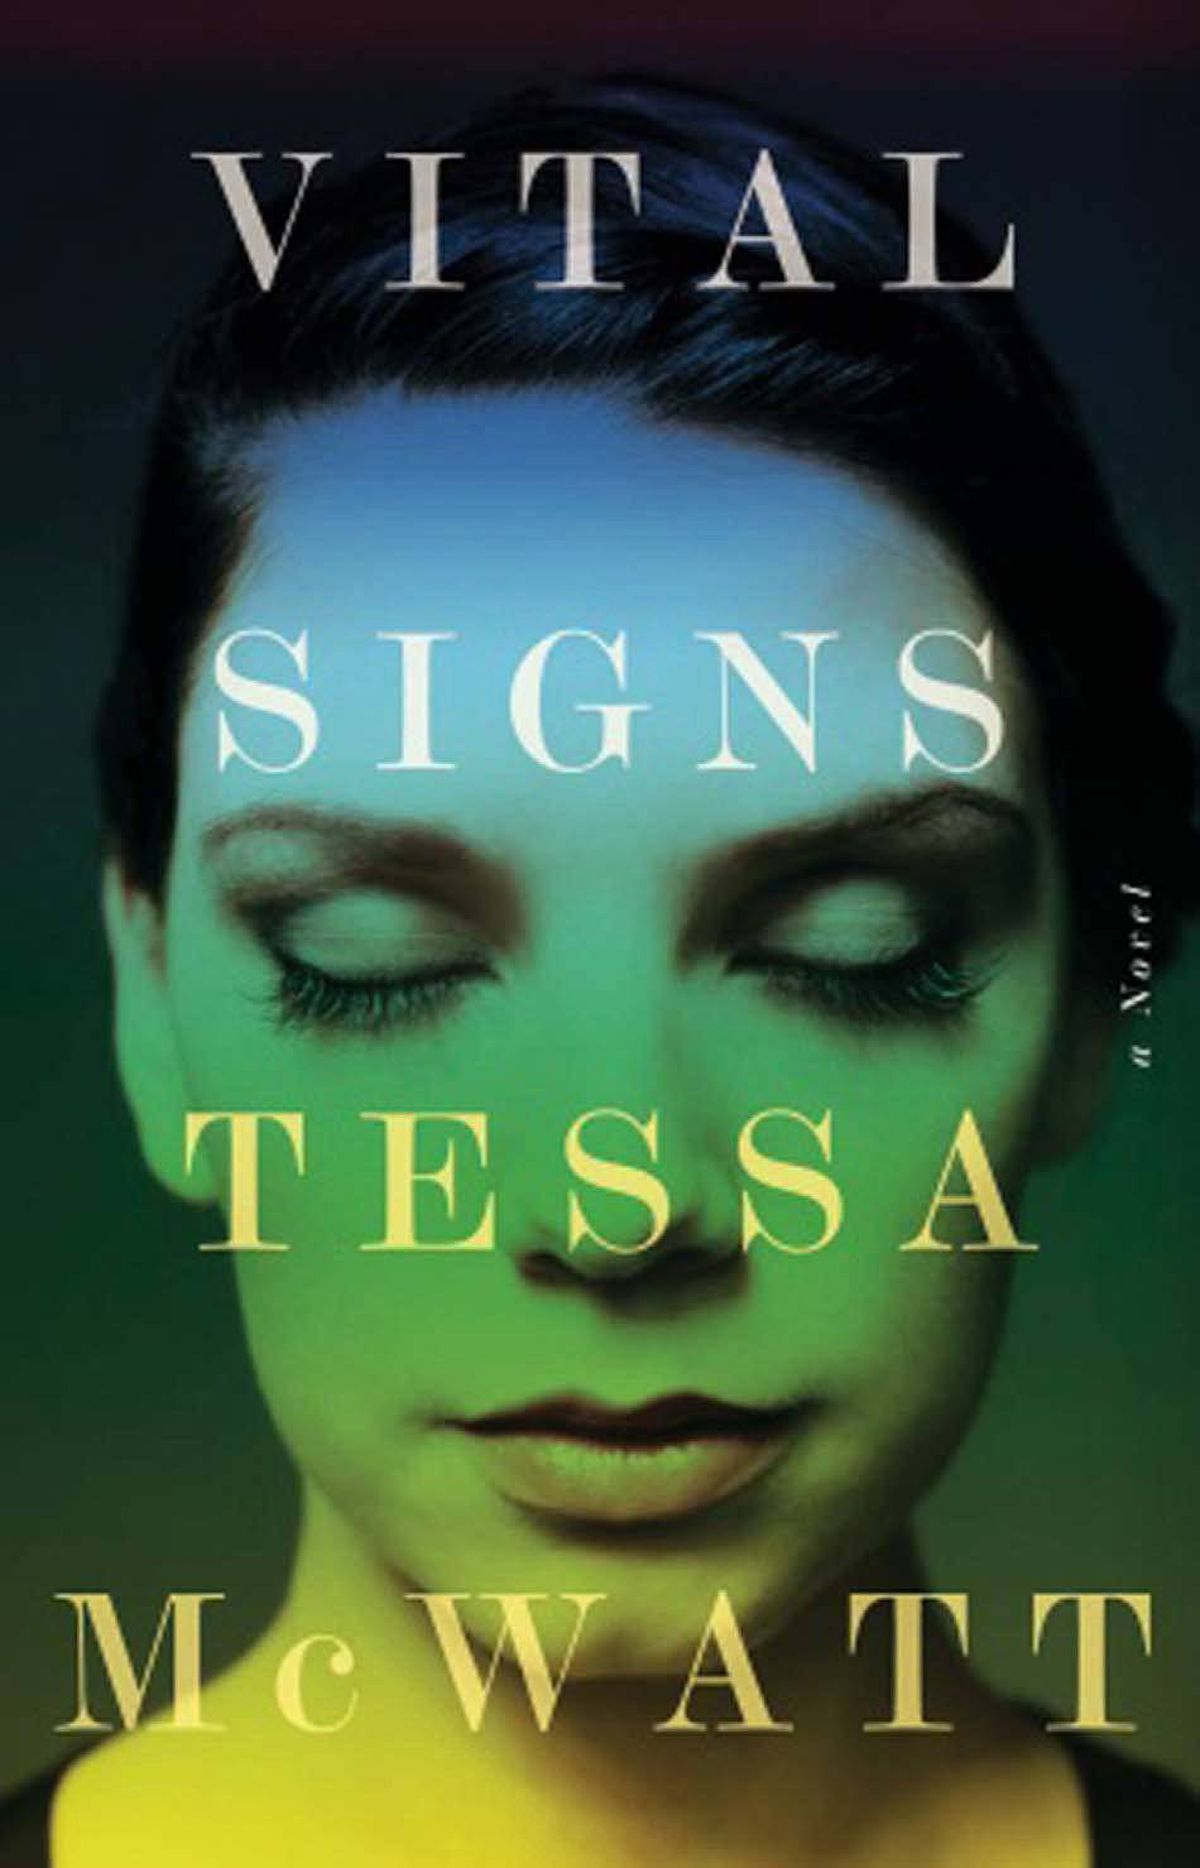 "VITAL SIGNS By Tessa McWatt (Random House Canada) McWatt's bracing slap of a novel makes long-term couplehood more puzzling, murky and indefinable than ever. After 30 years of marriage, Michael and Anna must contend with Anna's brain aneurysm and the prospect of a life-threatening operation. Over this book's eerie traverse, Michael comes to question everything he has ever thought about ""normal"" life. – Cynthia Macdonald"